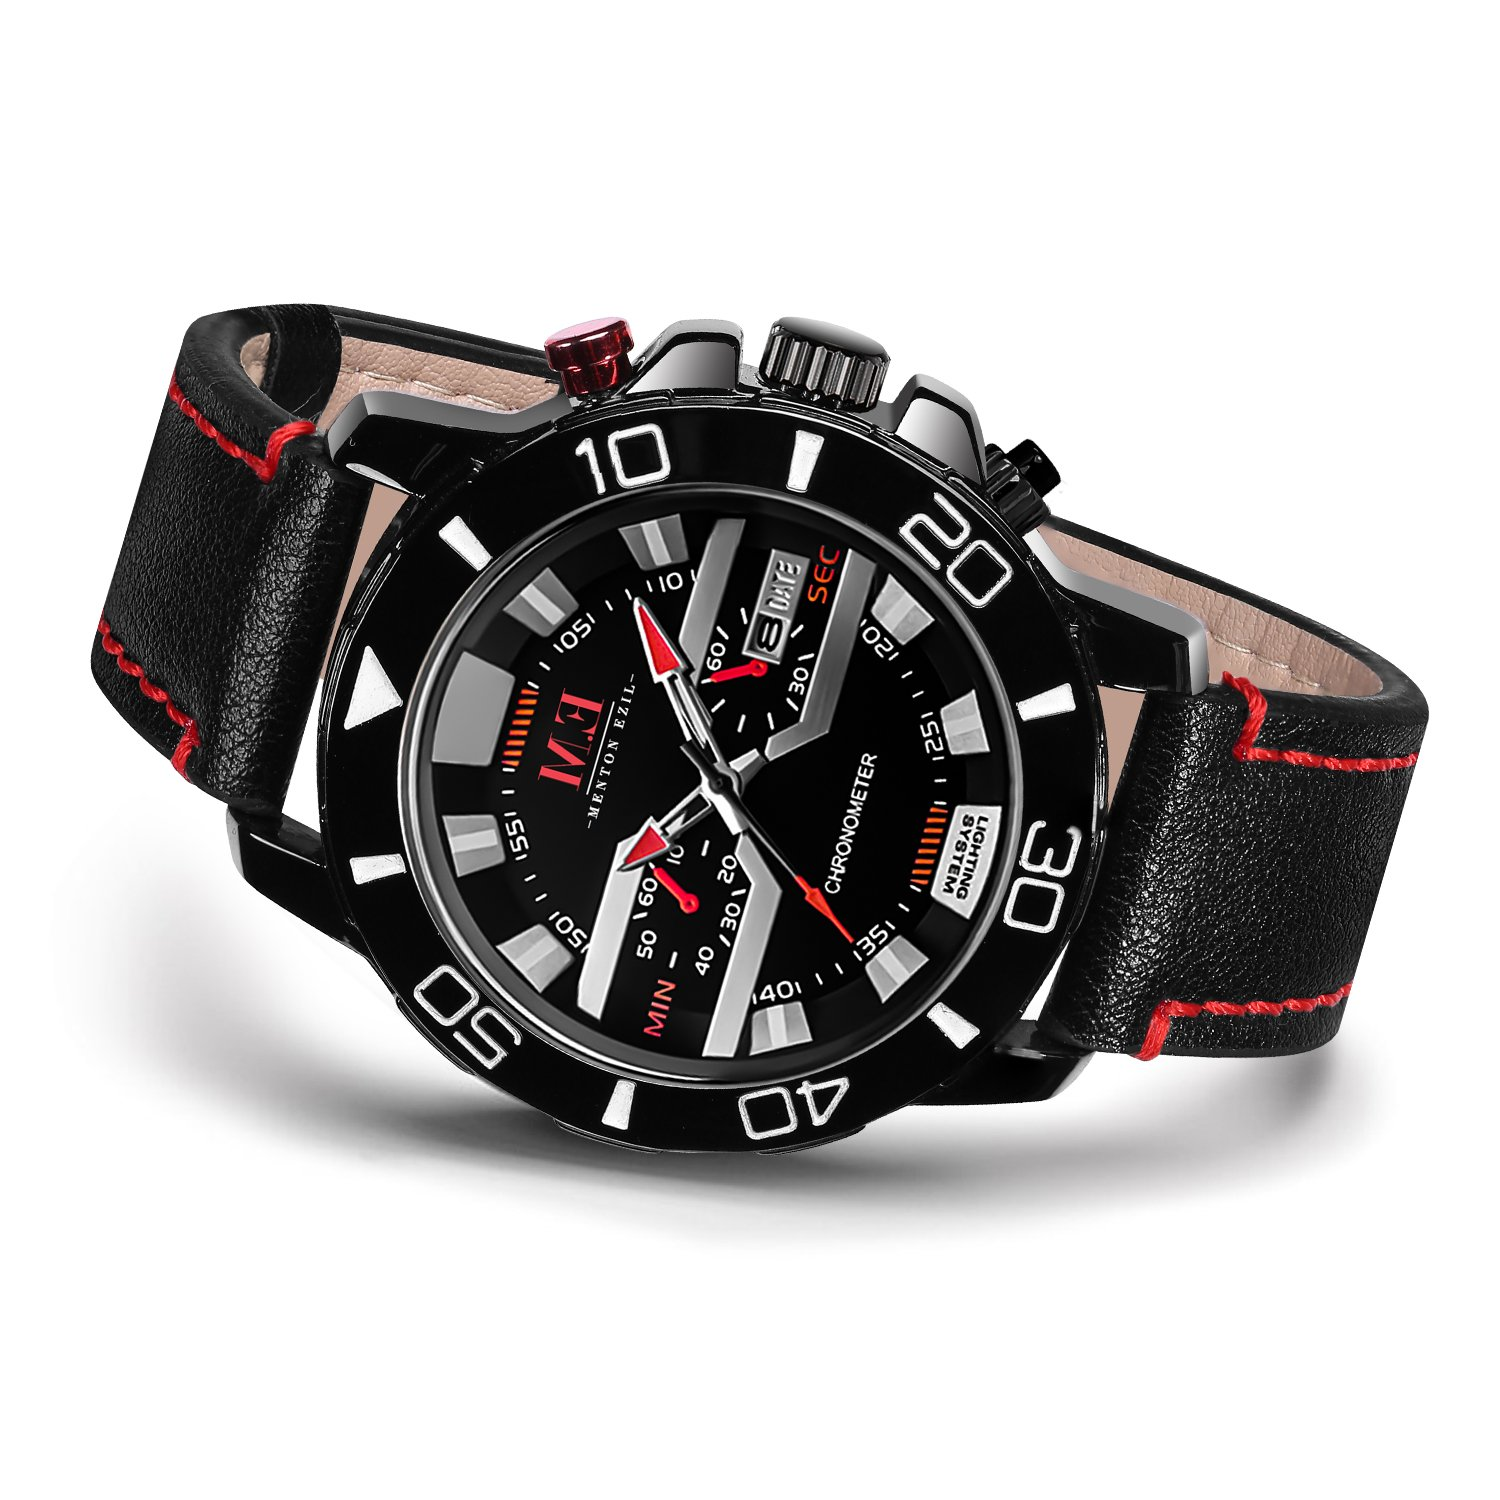 366a2c933 Valentines Day Gift for Him Menton Ezil Men's Sport Leather Strap Analog  Quartz Waterproof Watches Auto Calendar Wrist Watch for Teen Boys  (Black Red)